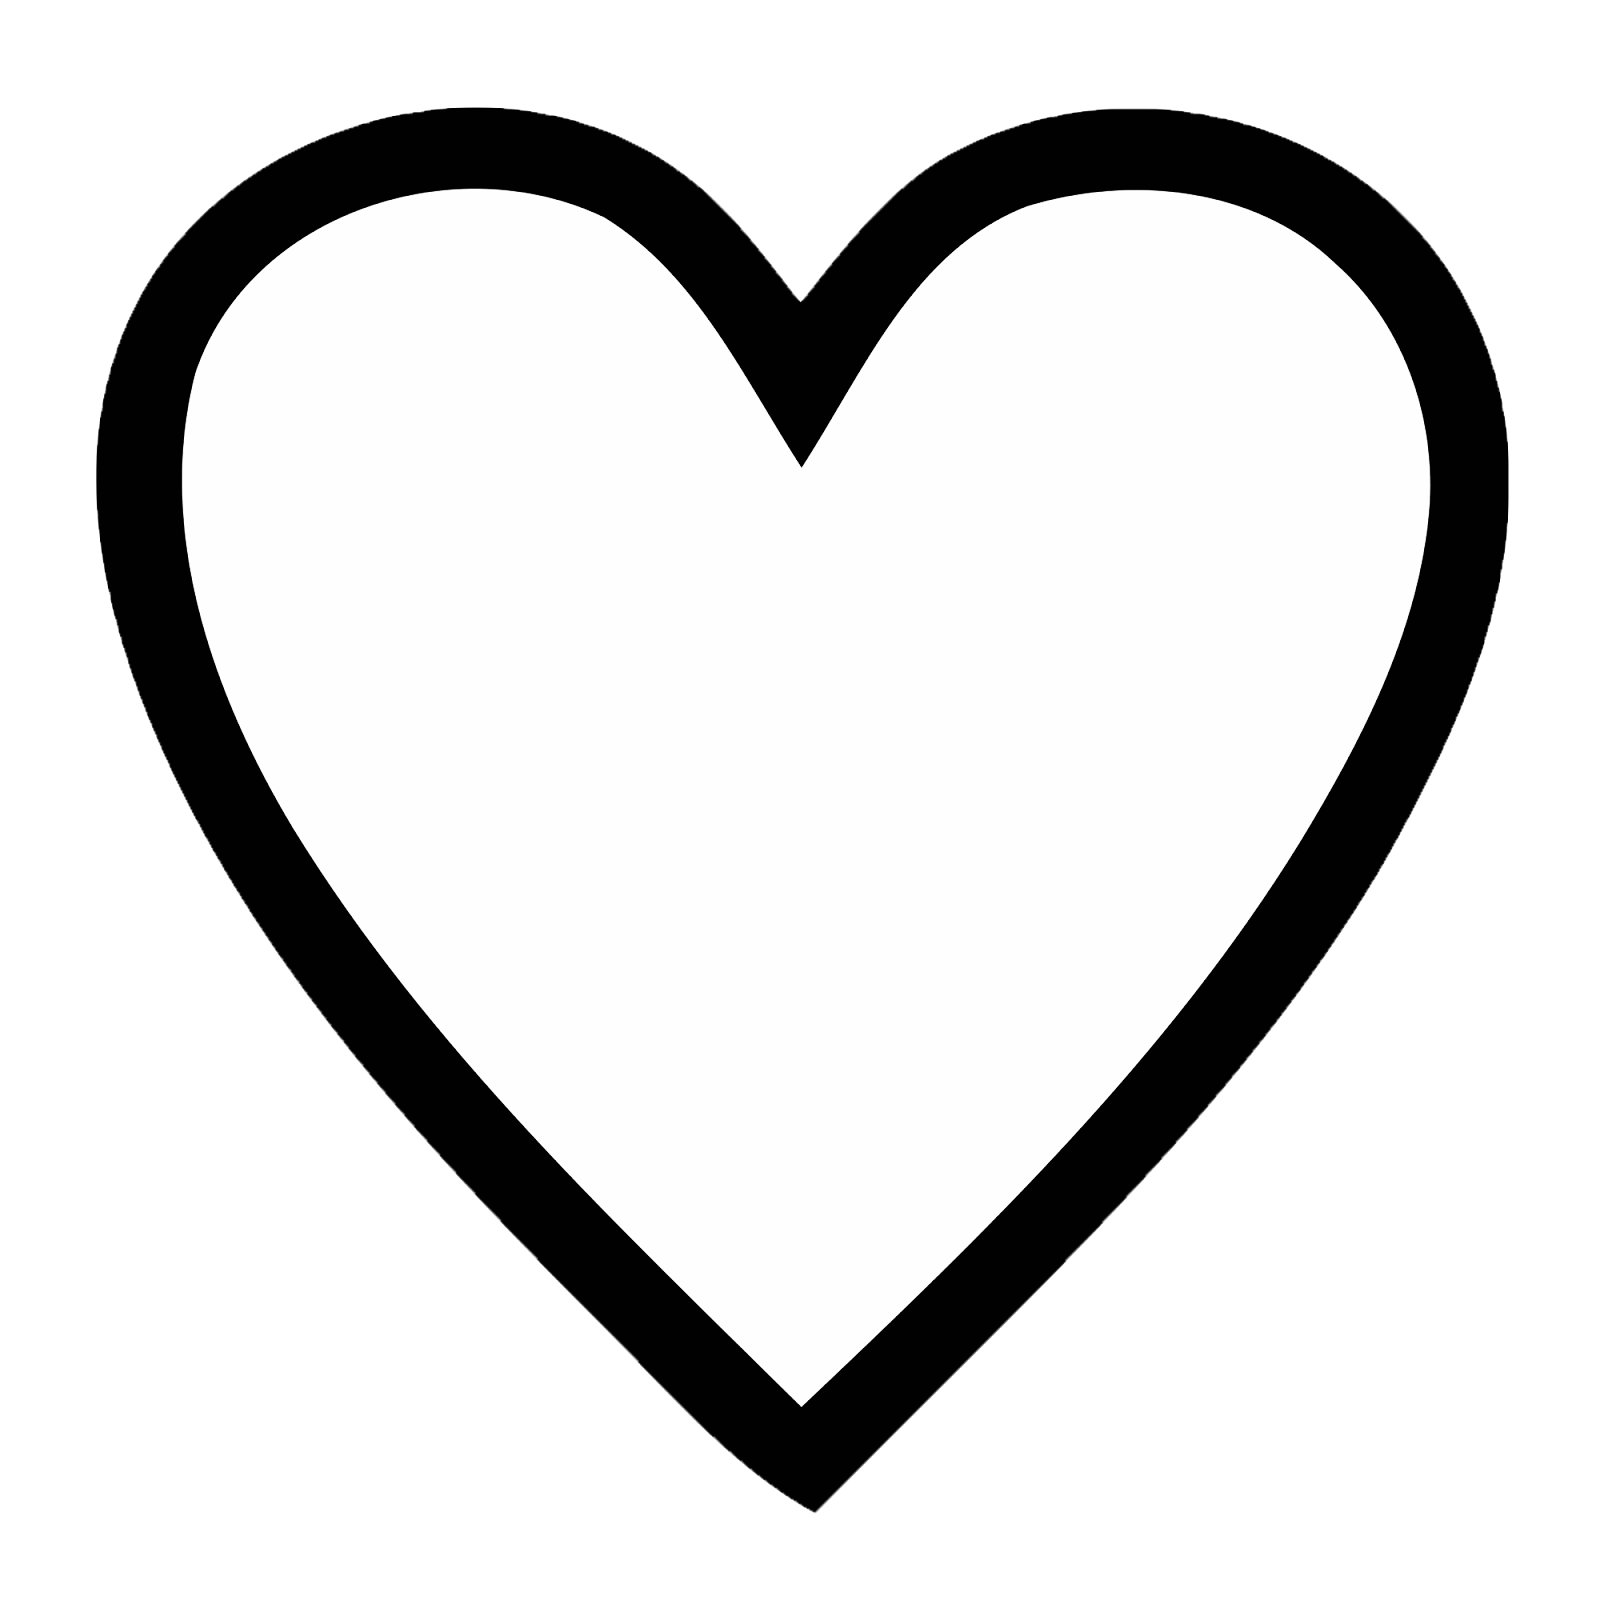 Line Art Heart Outline : Real heart drawing clipart panda free images